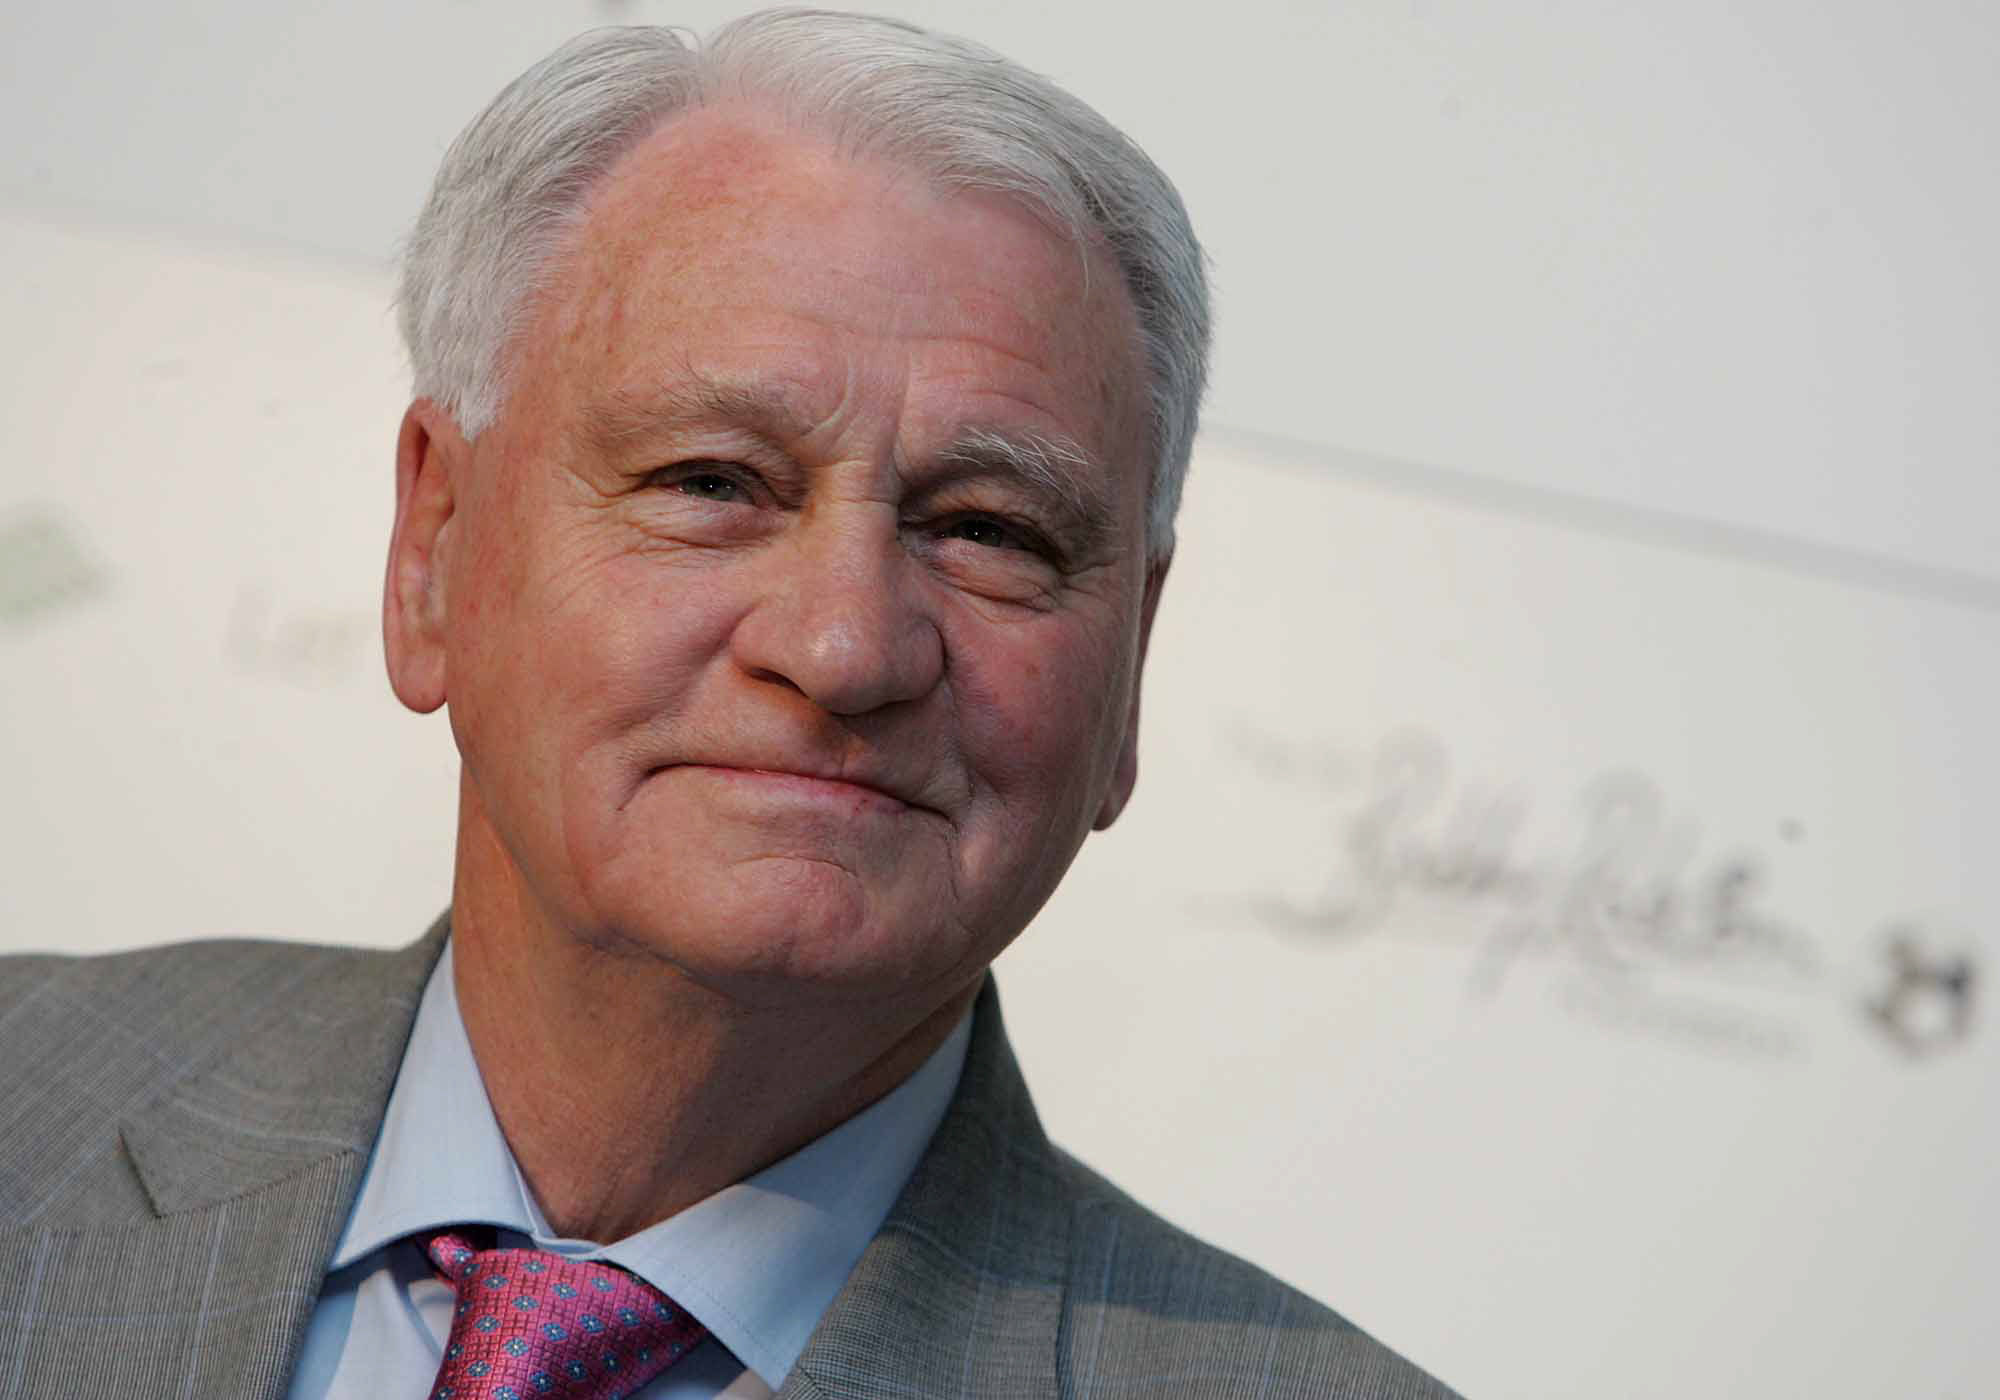 MUCH MISSED: Sir Bobby Robson, pictured at the launch of The Sir Bobby Robson Foundation in Newcastle in 2008